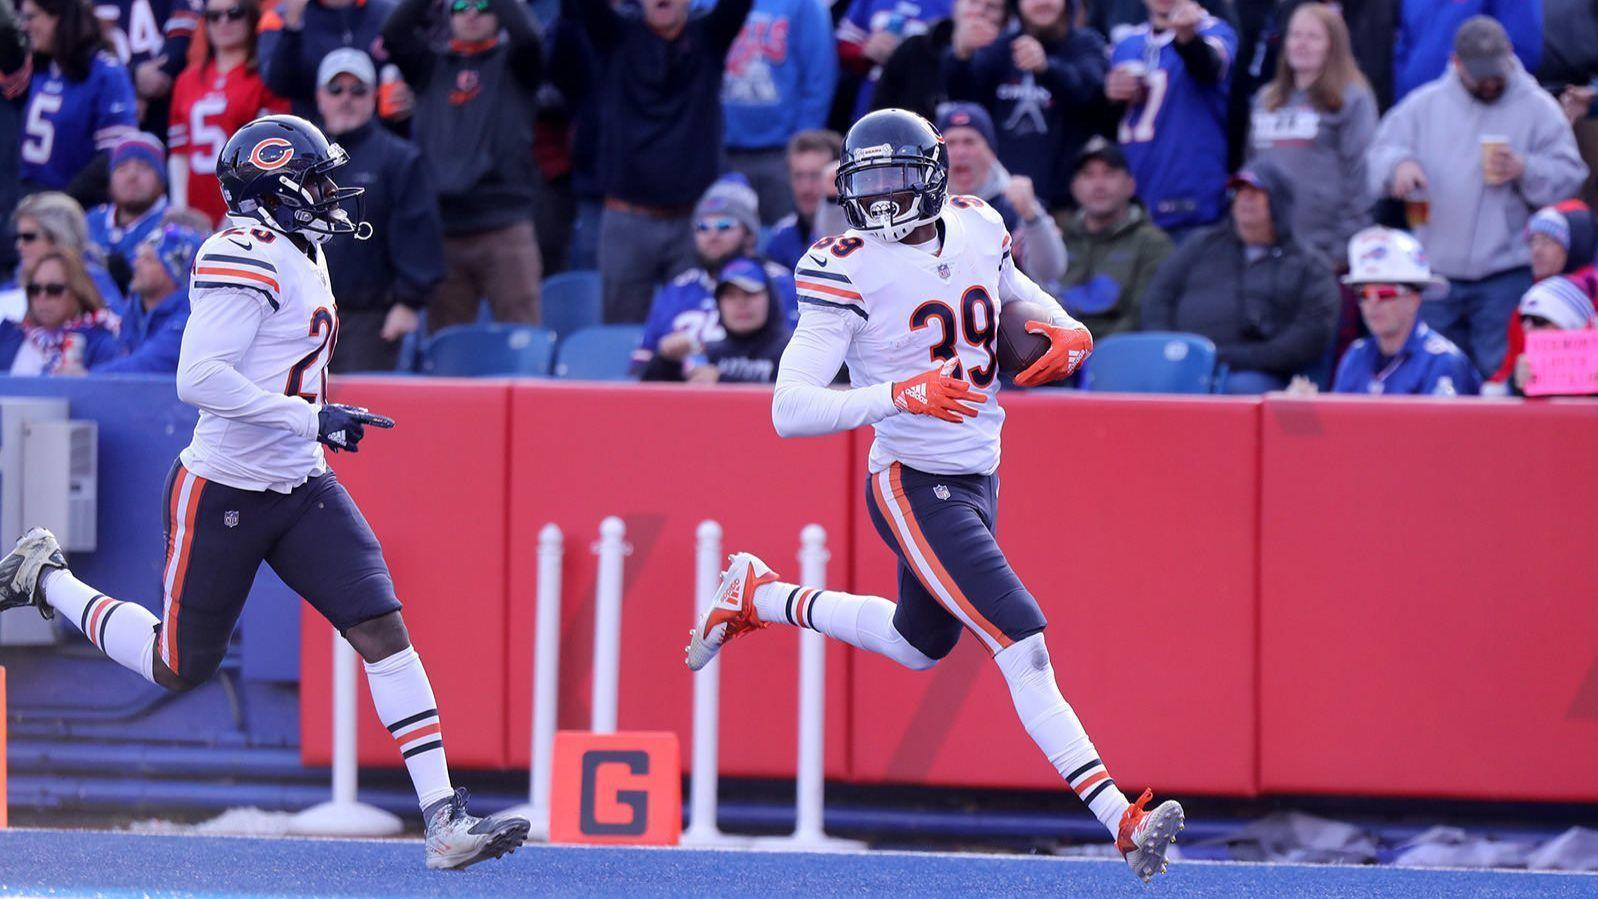 930fff549eb Eddie Jackson will be a game-time decision for Bears' playoff game vs.  Eagles